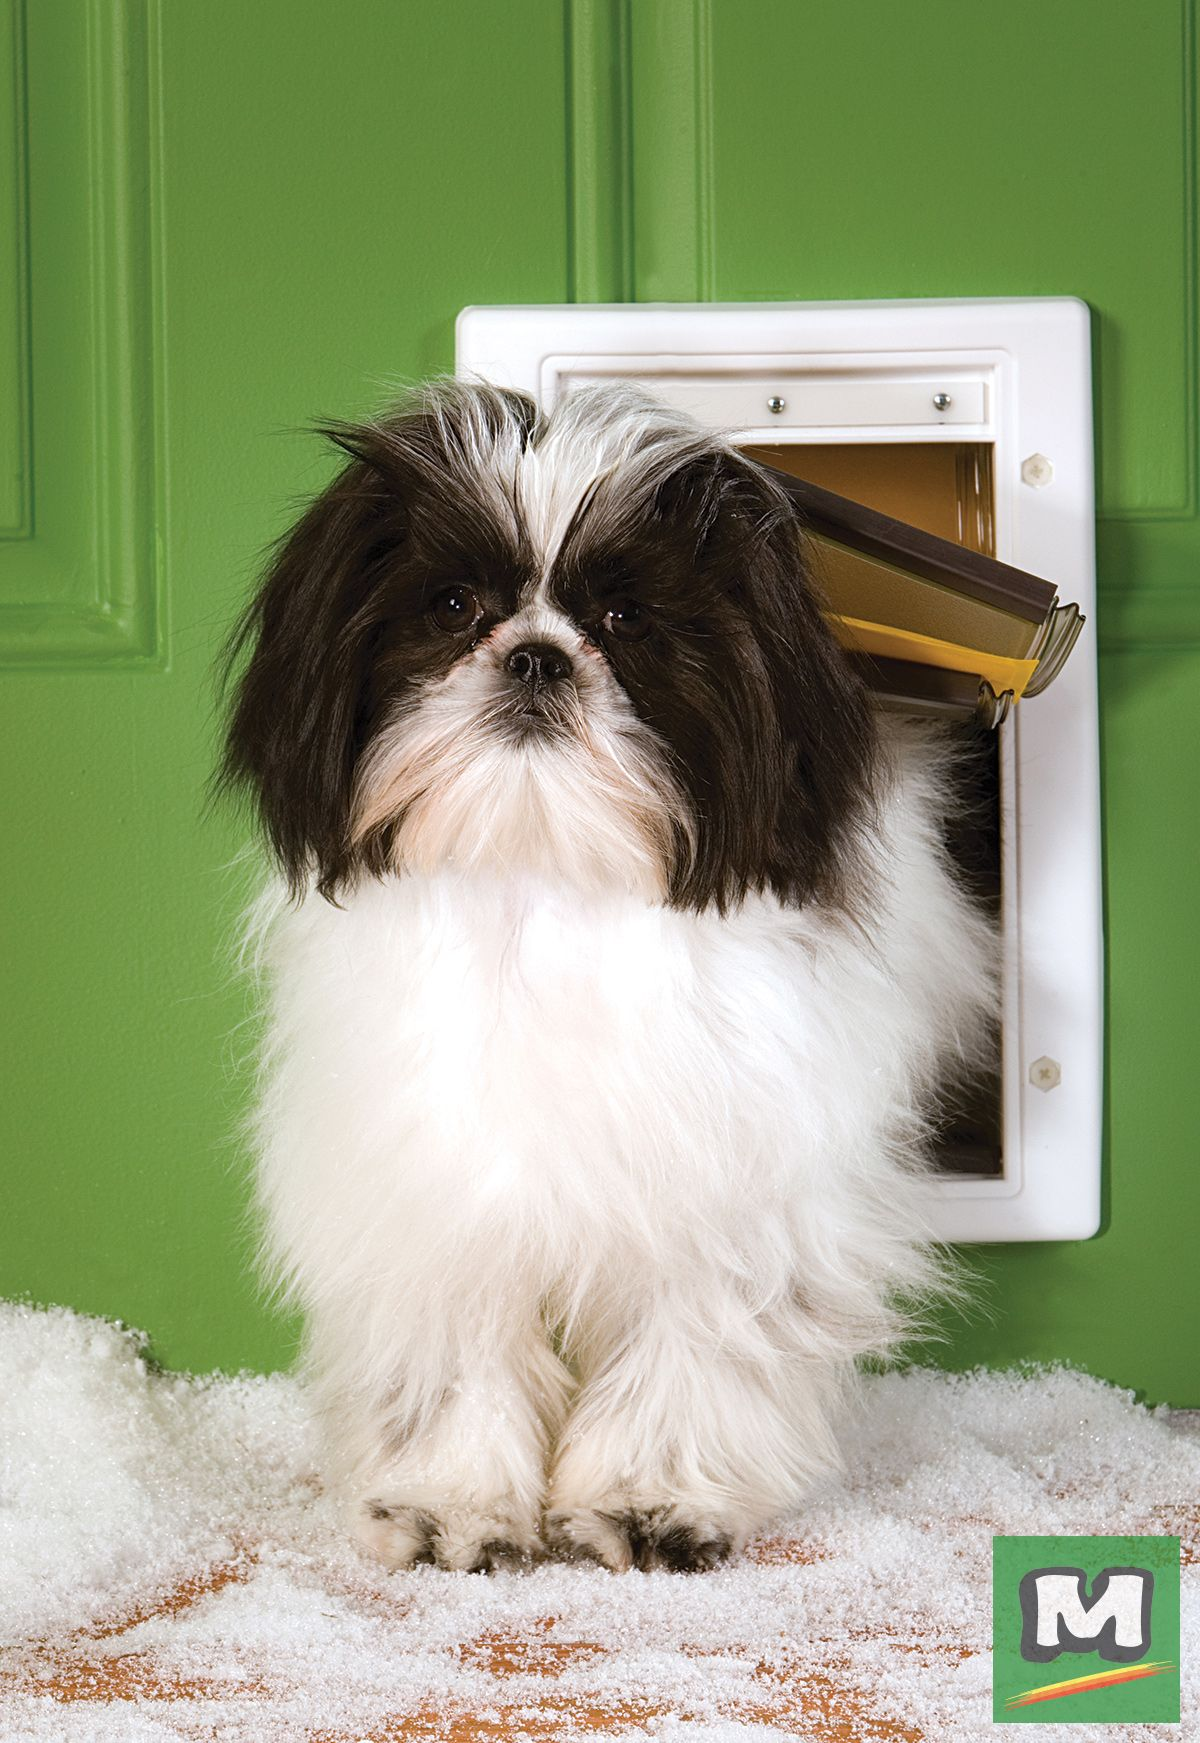 The Extreme Weather Pet Door From Petsafe Is The Perfect Pet